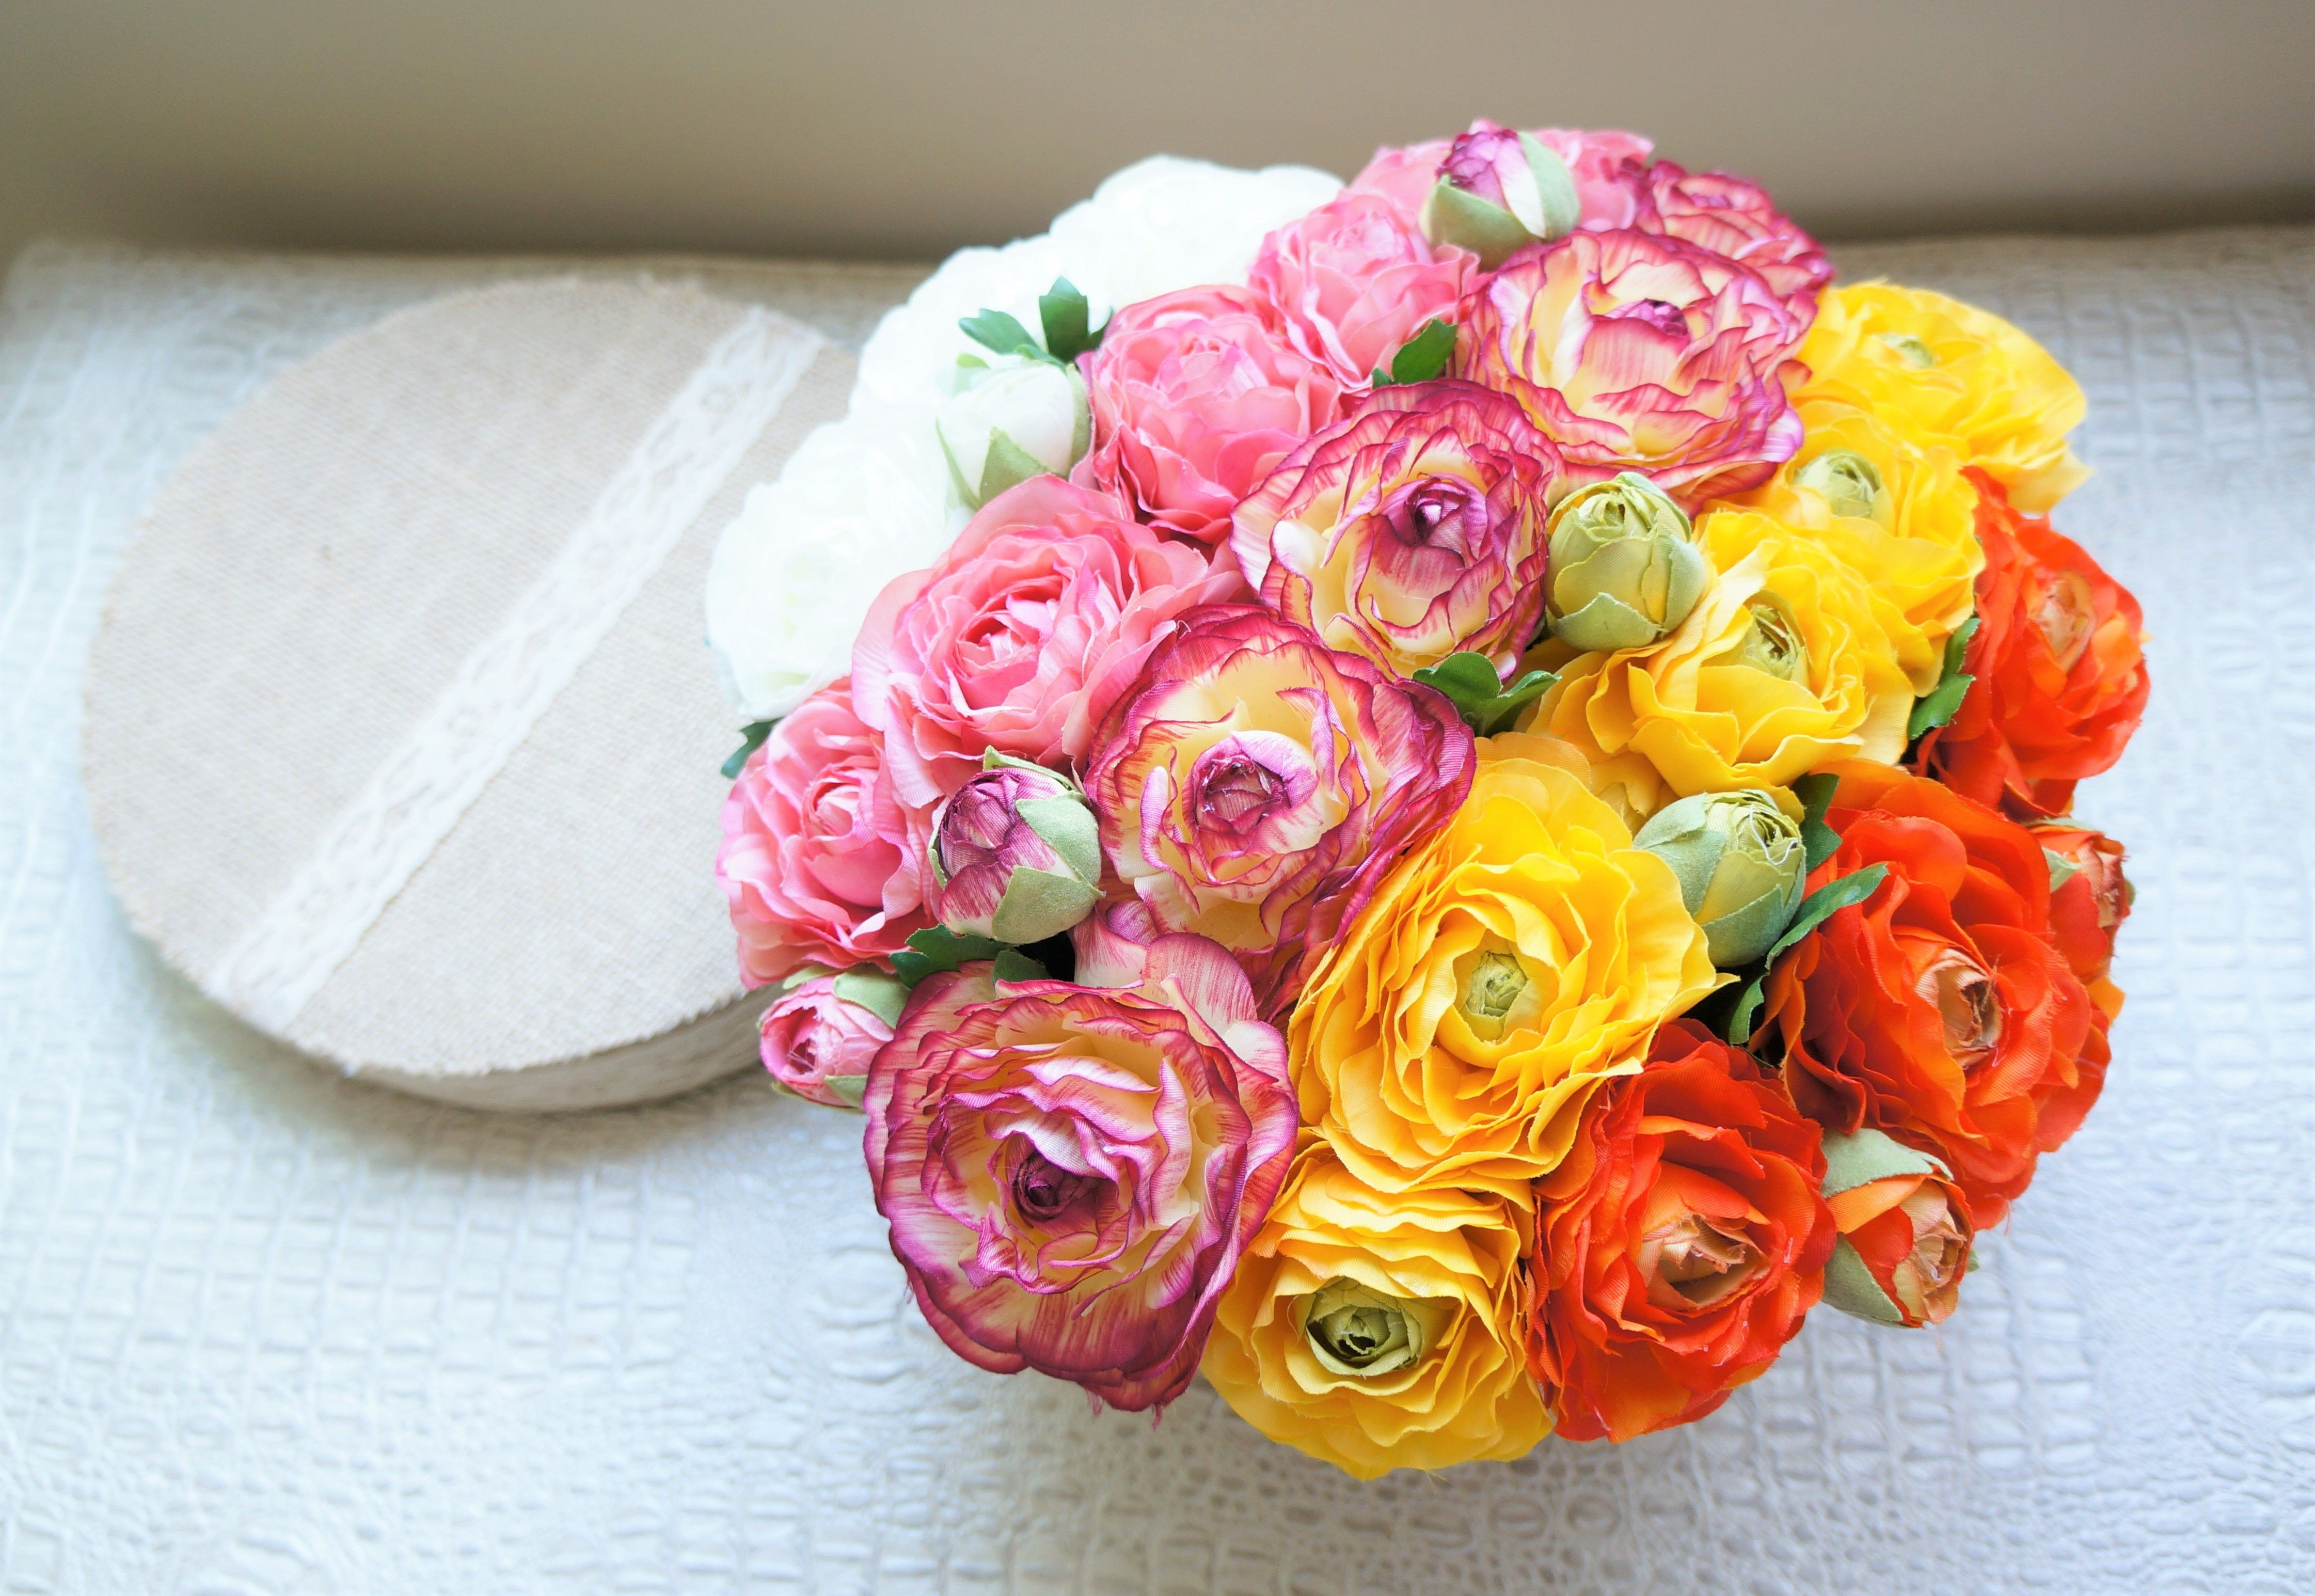 Introducing The Famous Flower Box Created With High Quality Silk